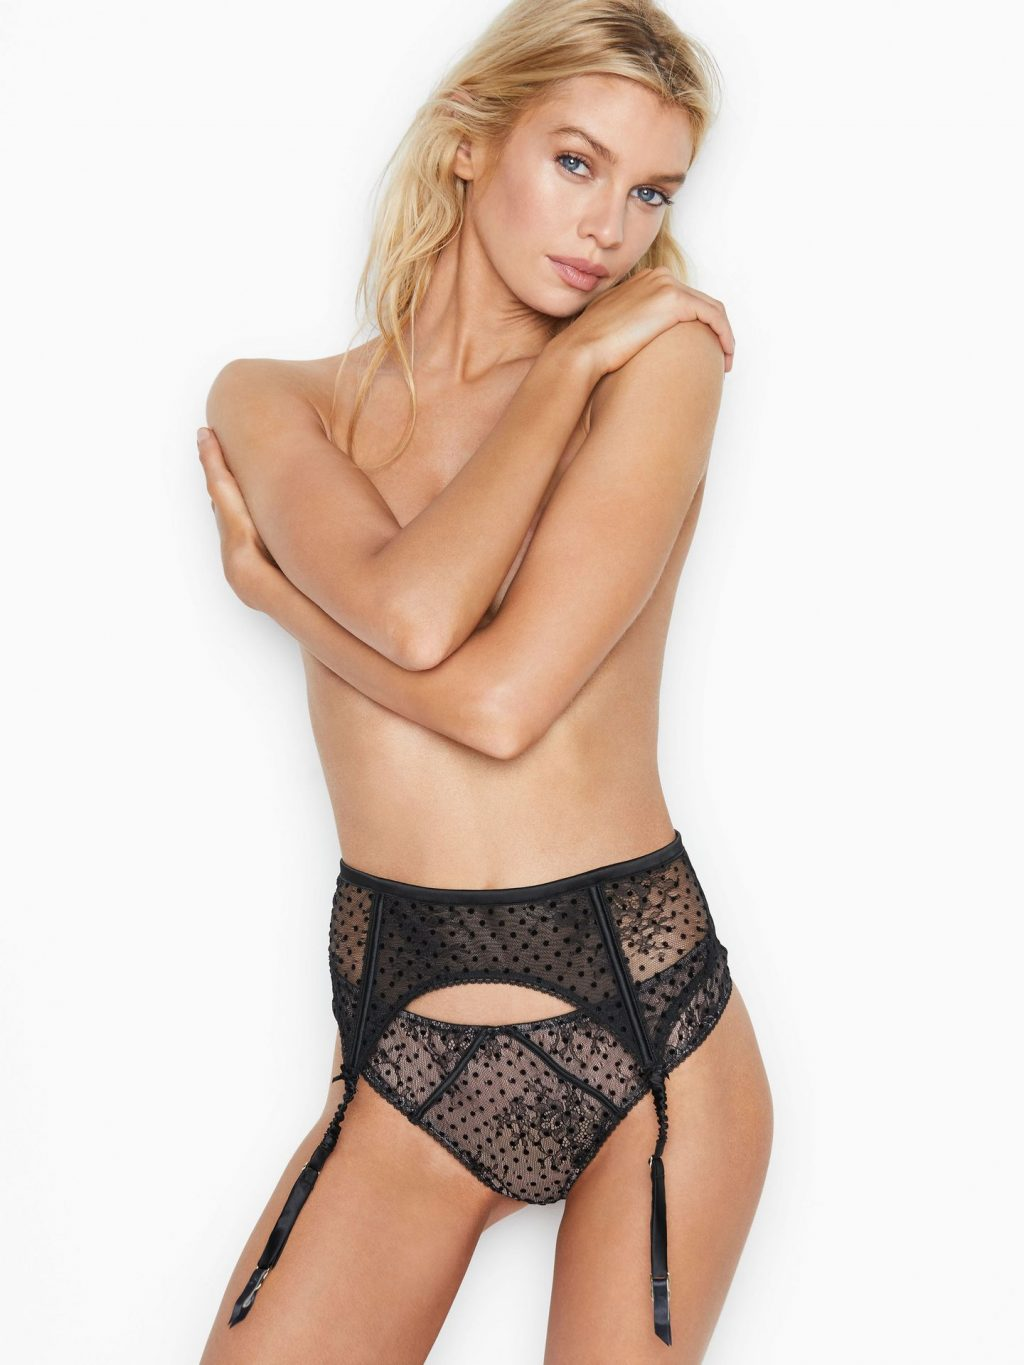 Stella Maxwell Shows Off Some Skin for Victoria's Secret (2 Photos)